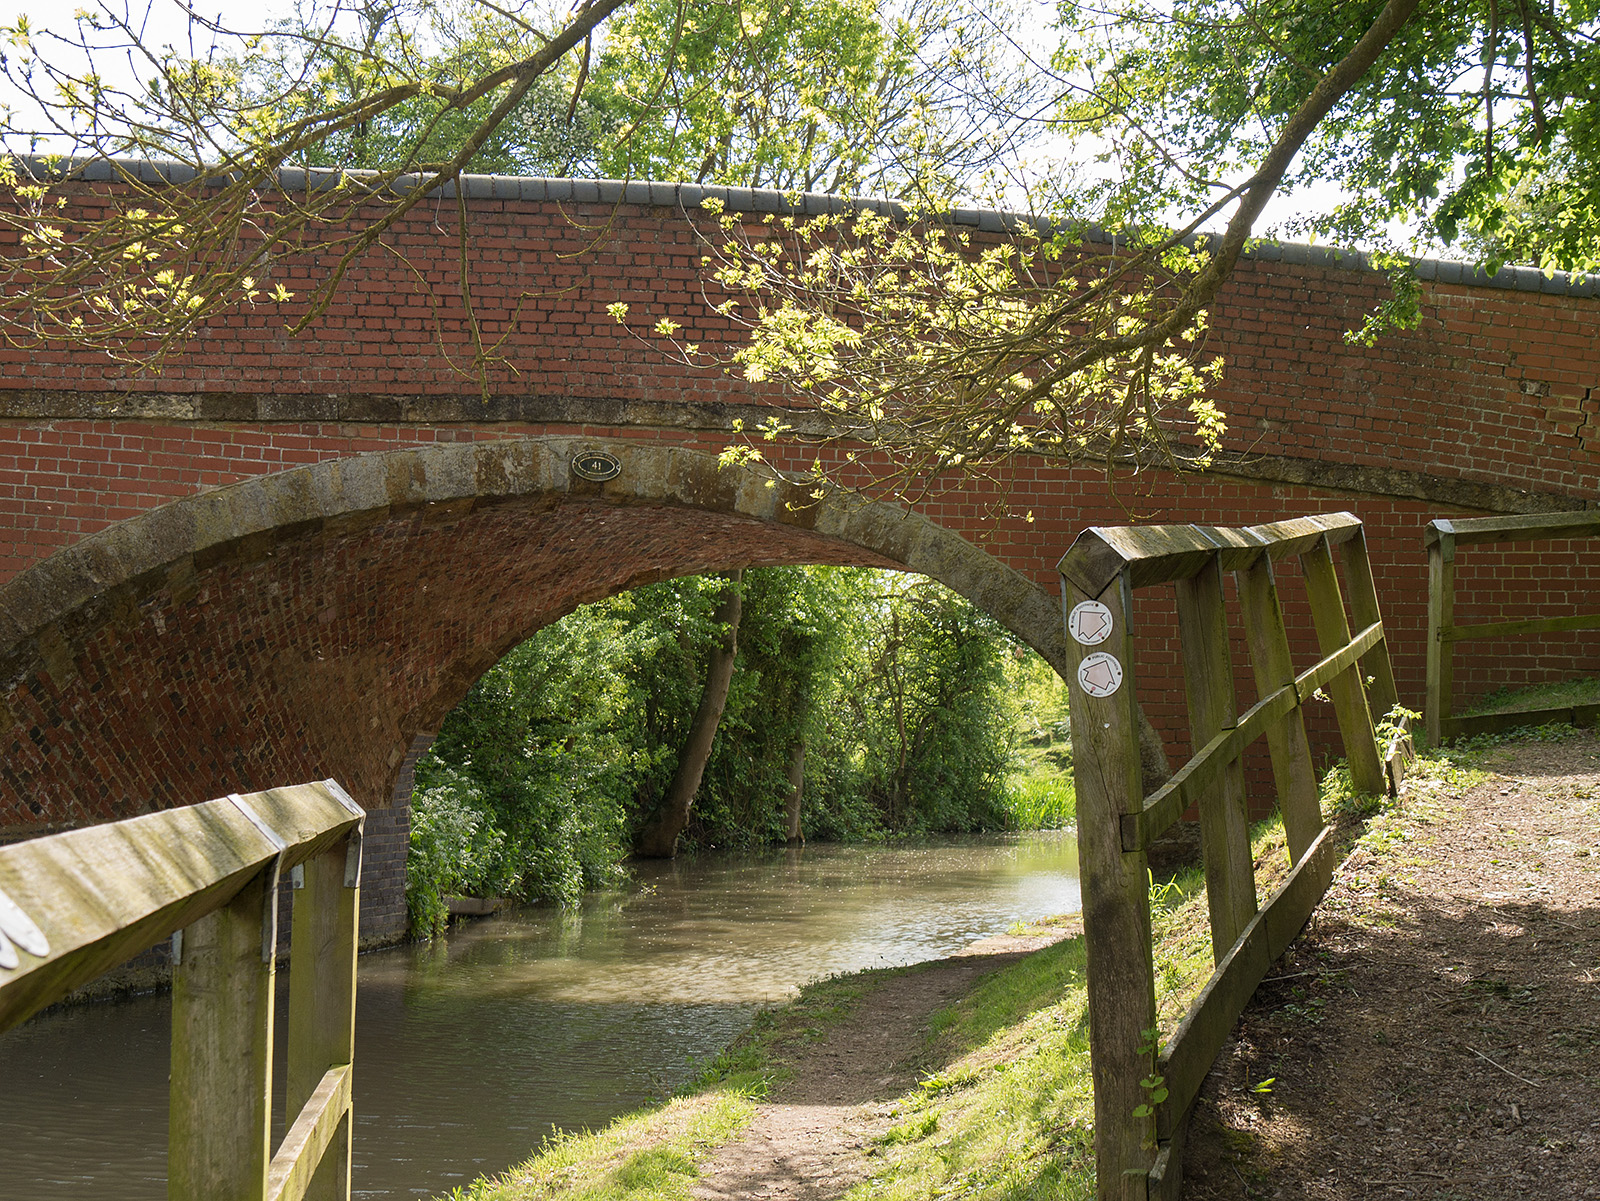 Bridge 41 carries the walking route known as Midshires way